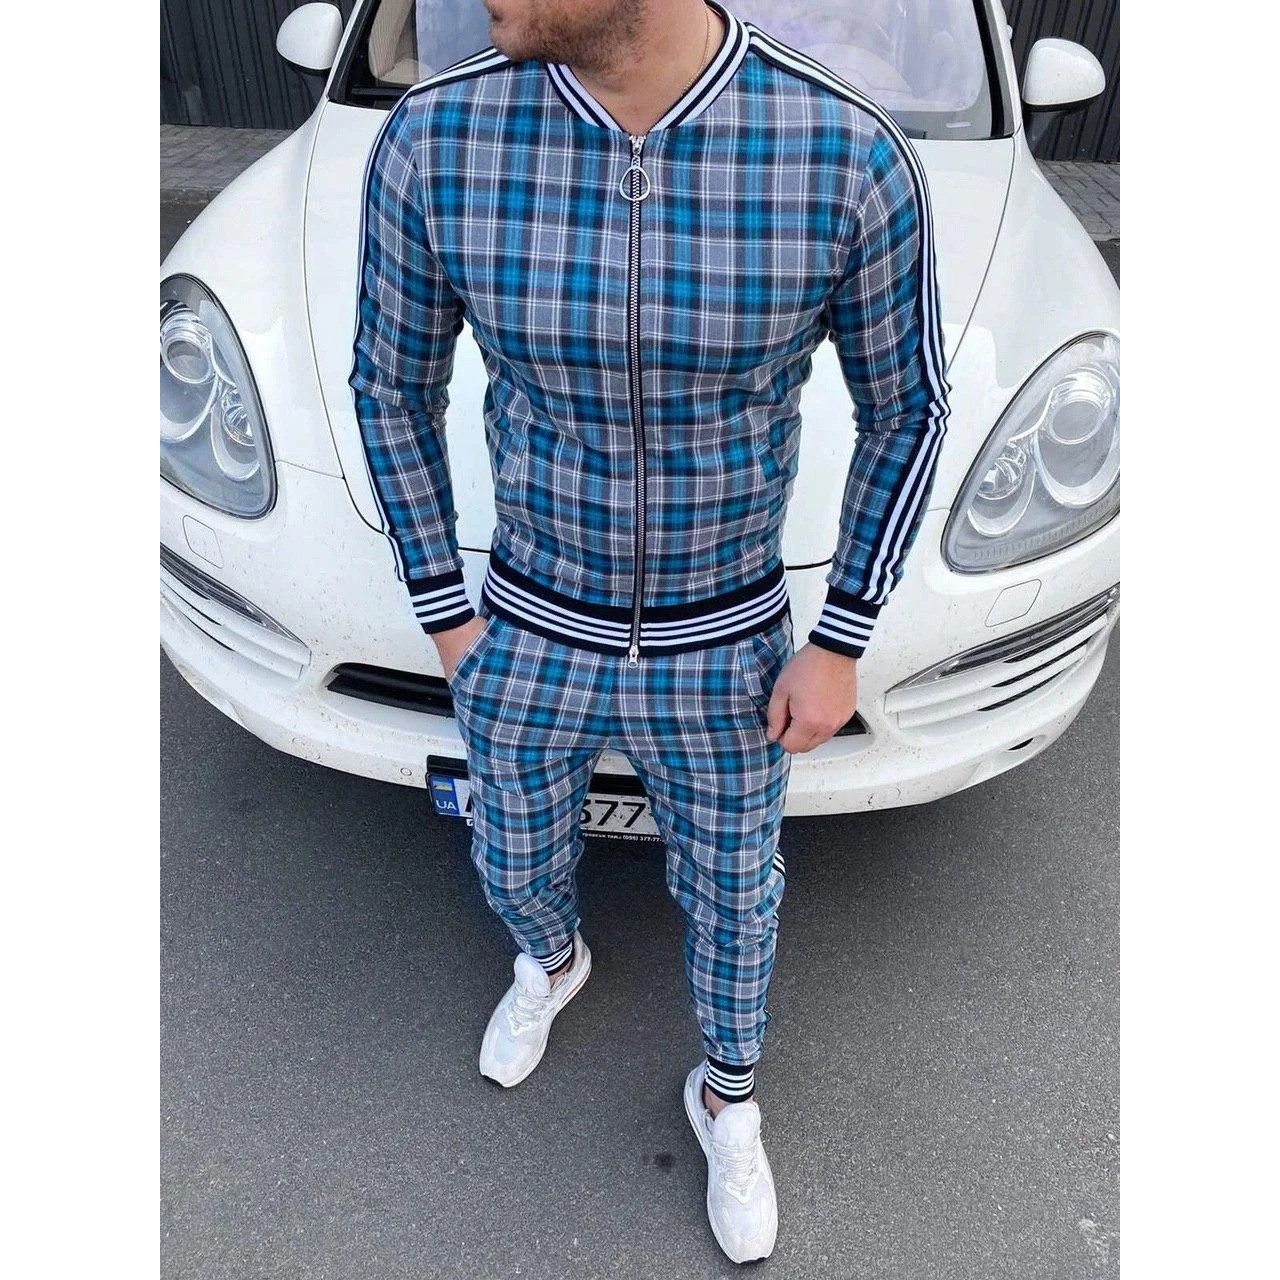 Image of Sport Suits European American Trends 3D Print Fitness Zipper Hoodies Sweatpants Slim Casual Fashion Tracksuits